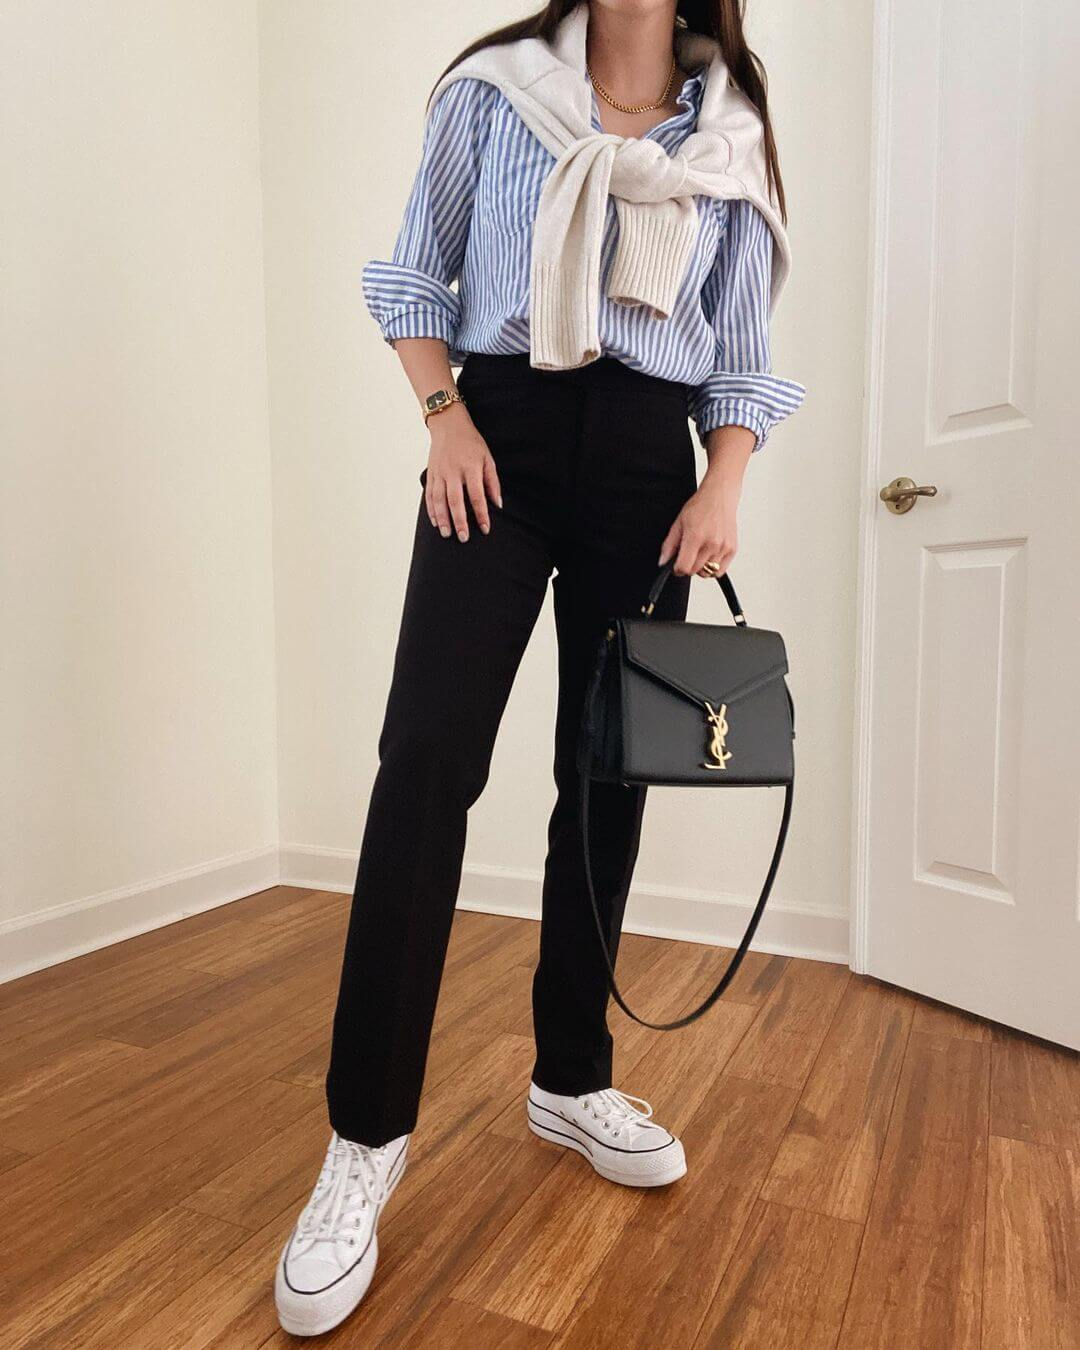 An Easy and Effortless Outfit Anyone Can Pull Off